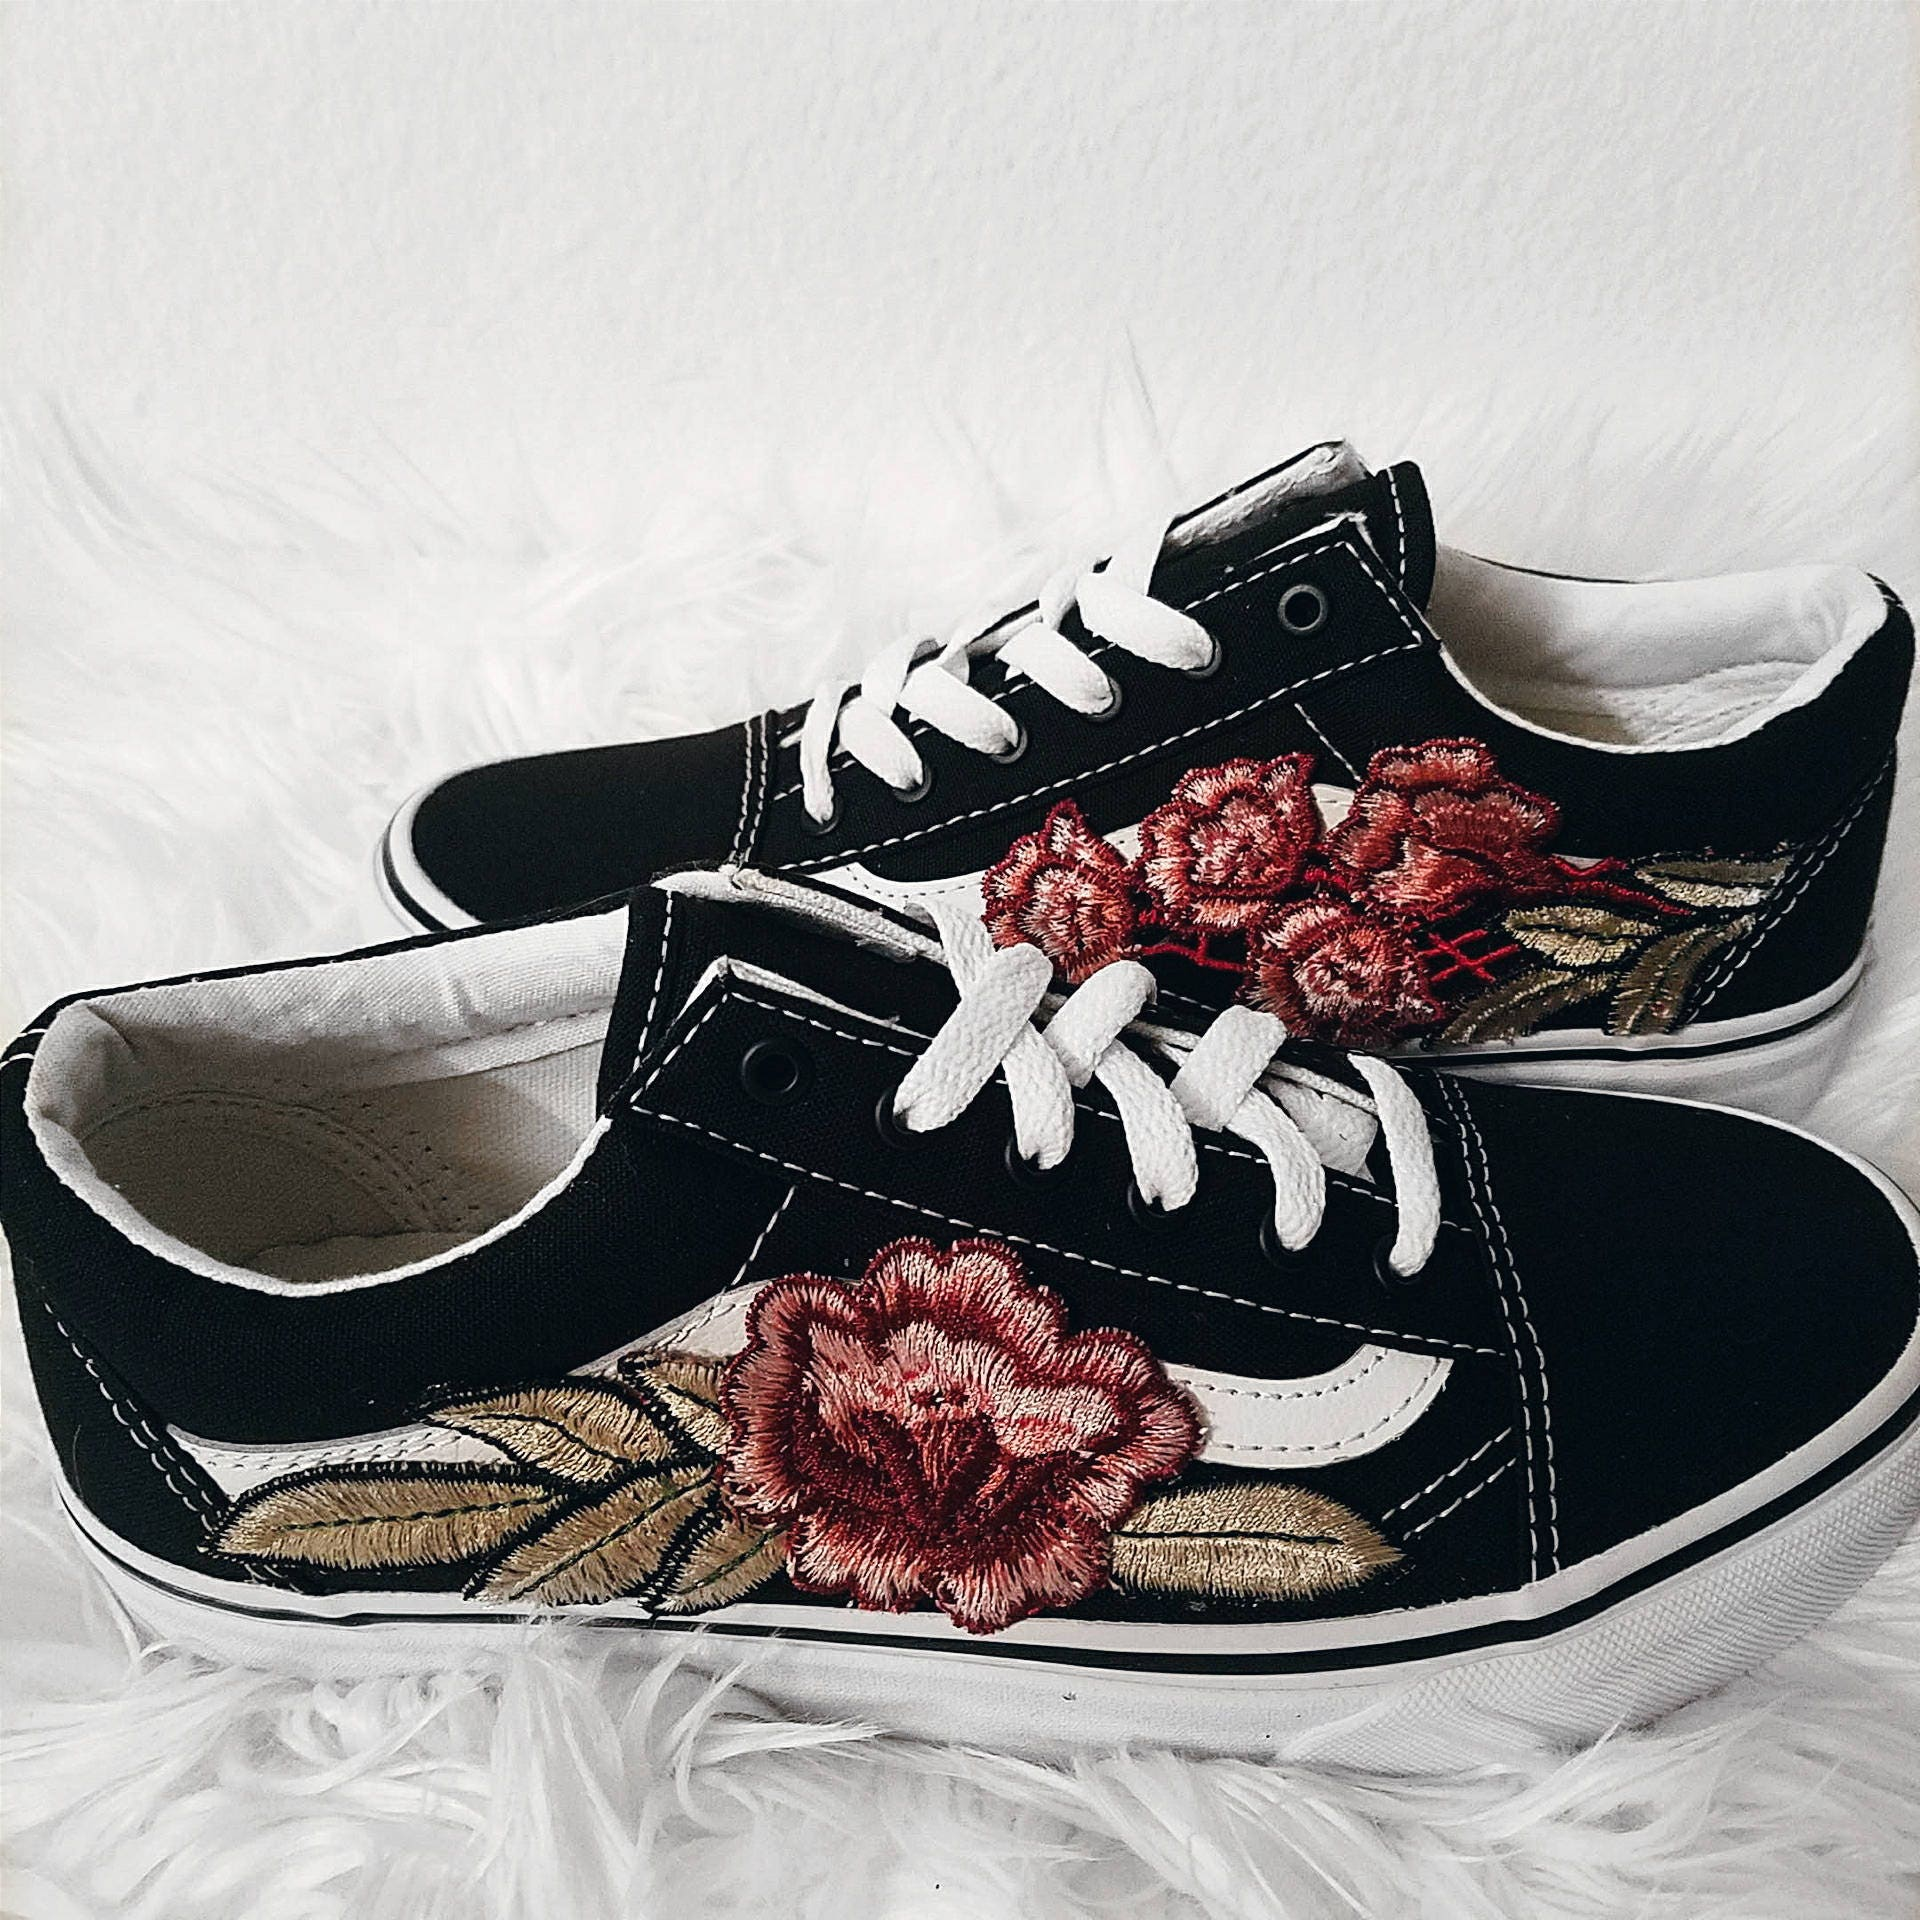 Low top unisex custom rose floral embroidered patch vans